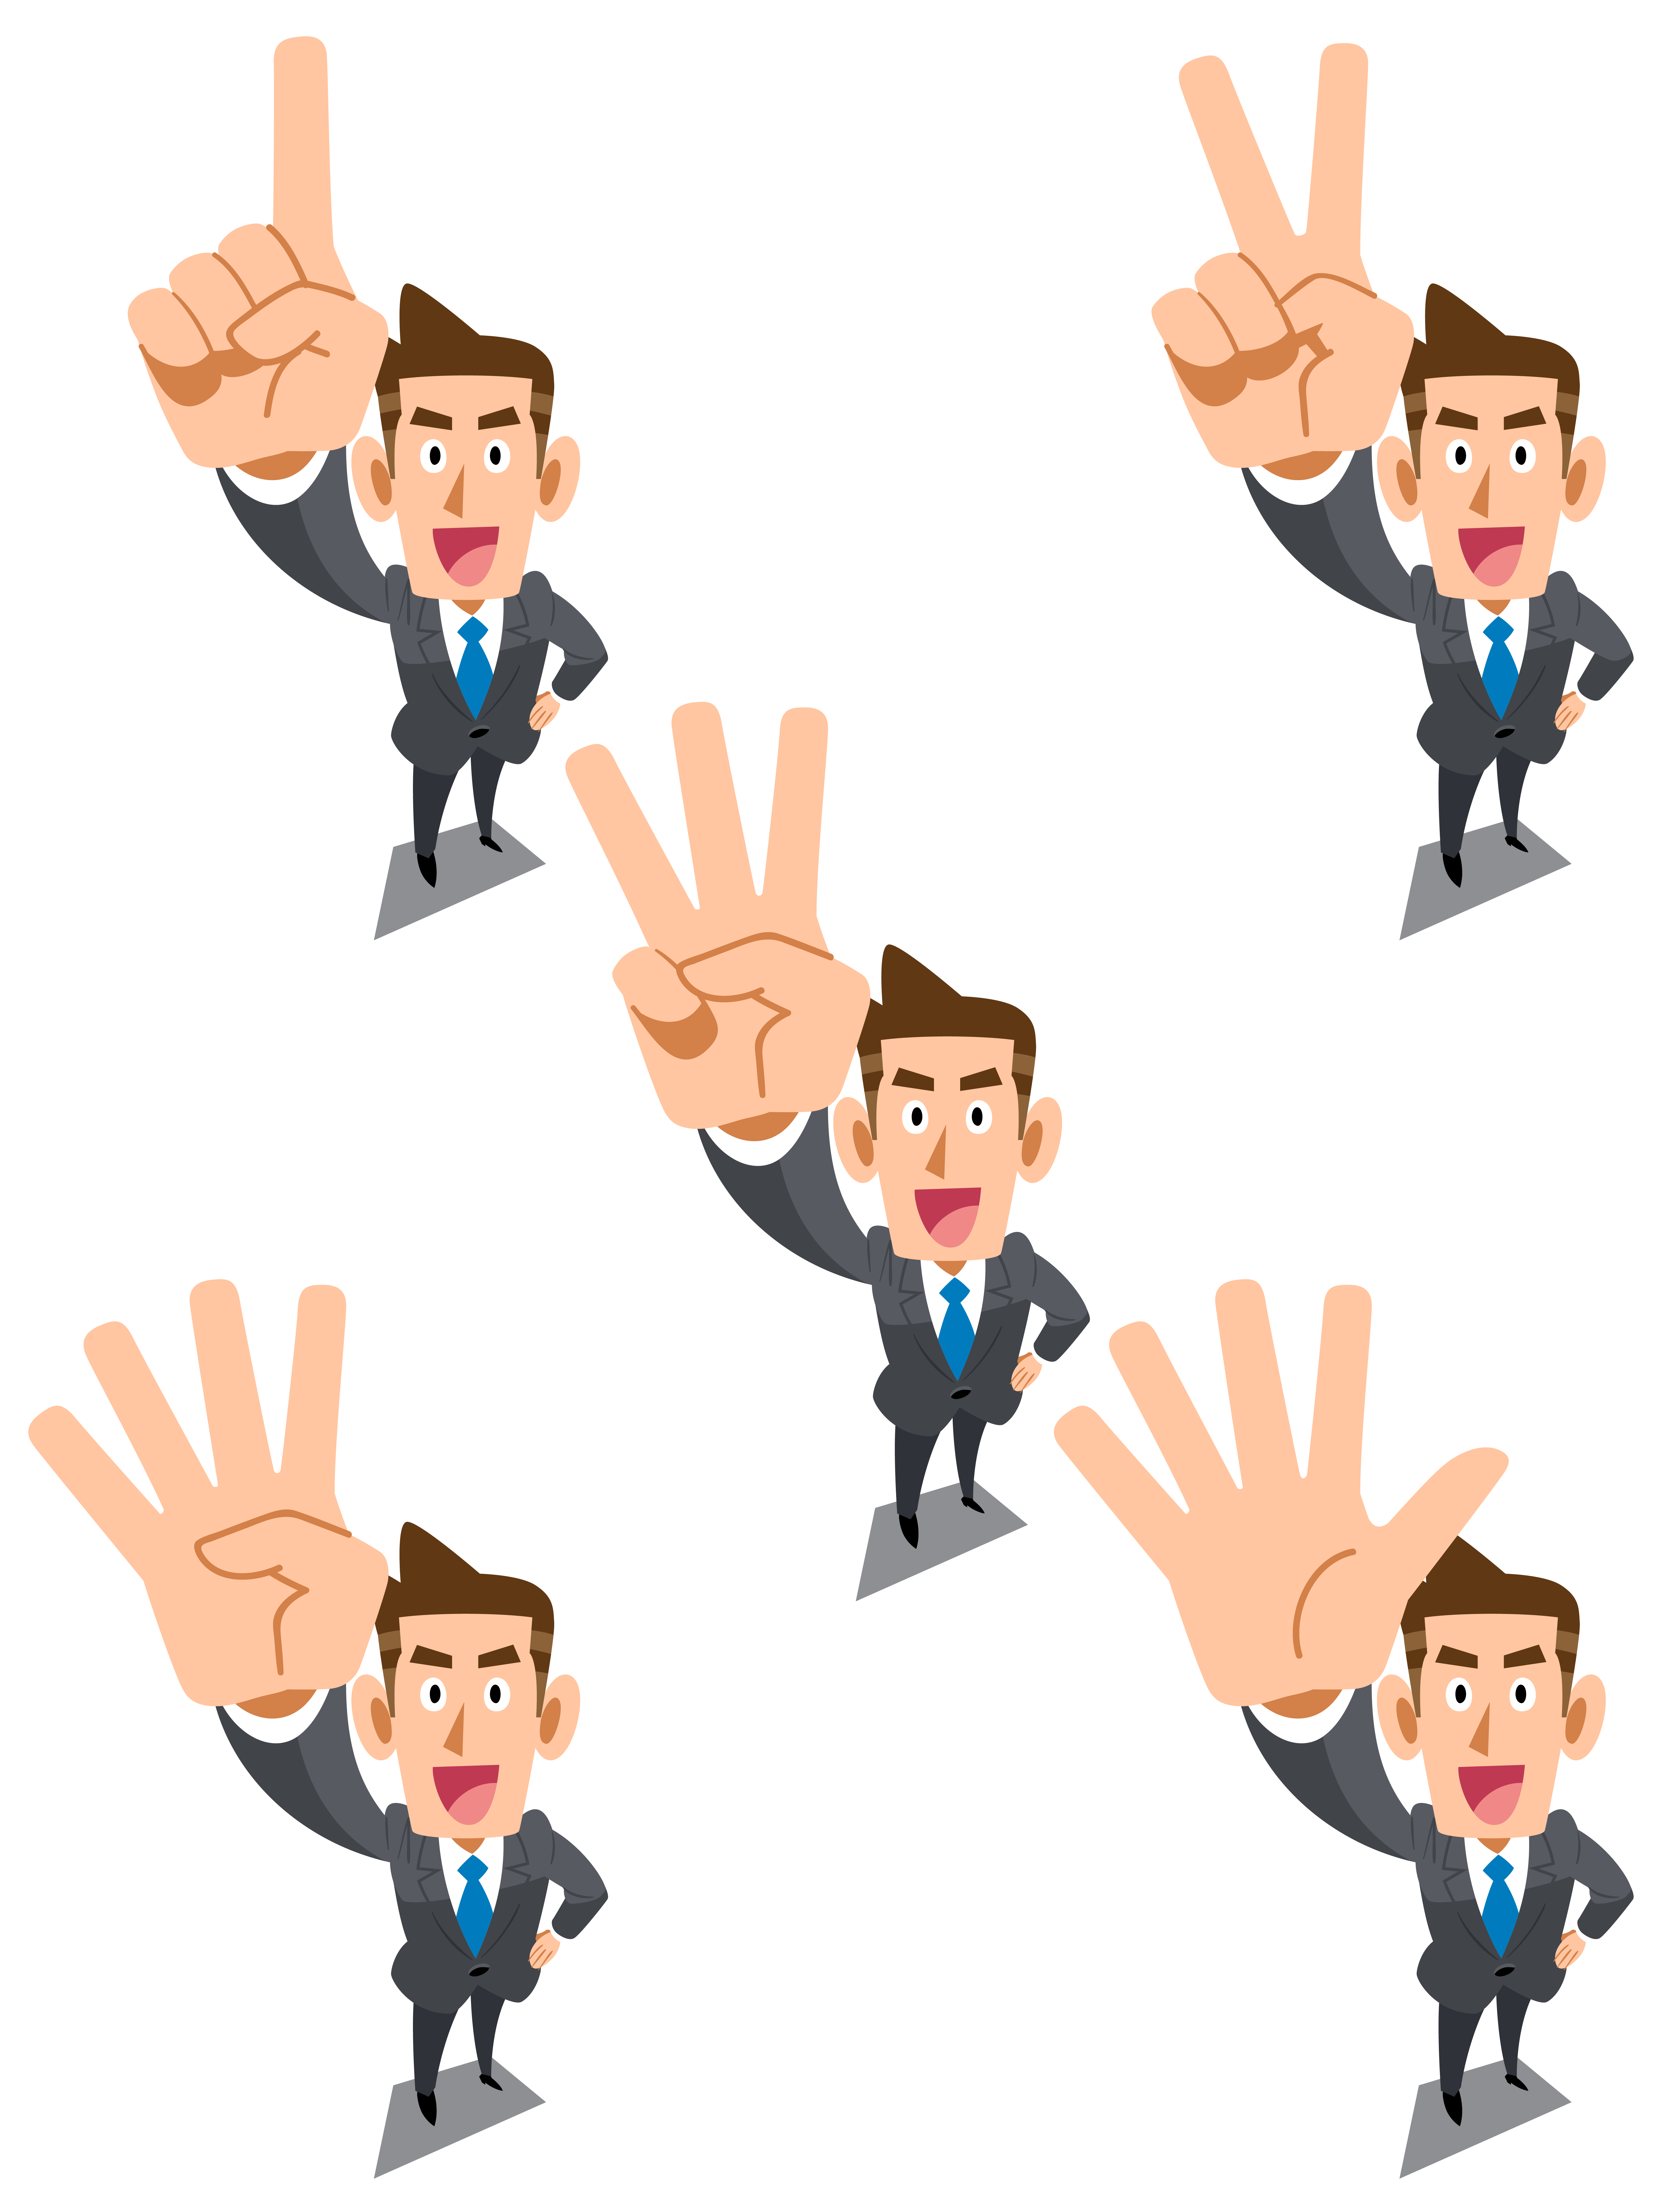 Businessperson cartoon illustration white. Happiness clipart business person